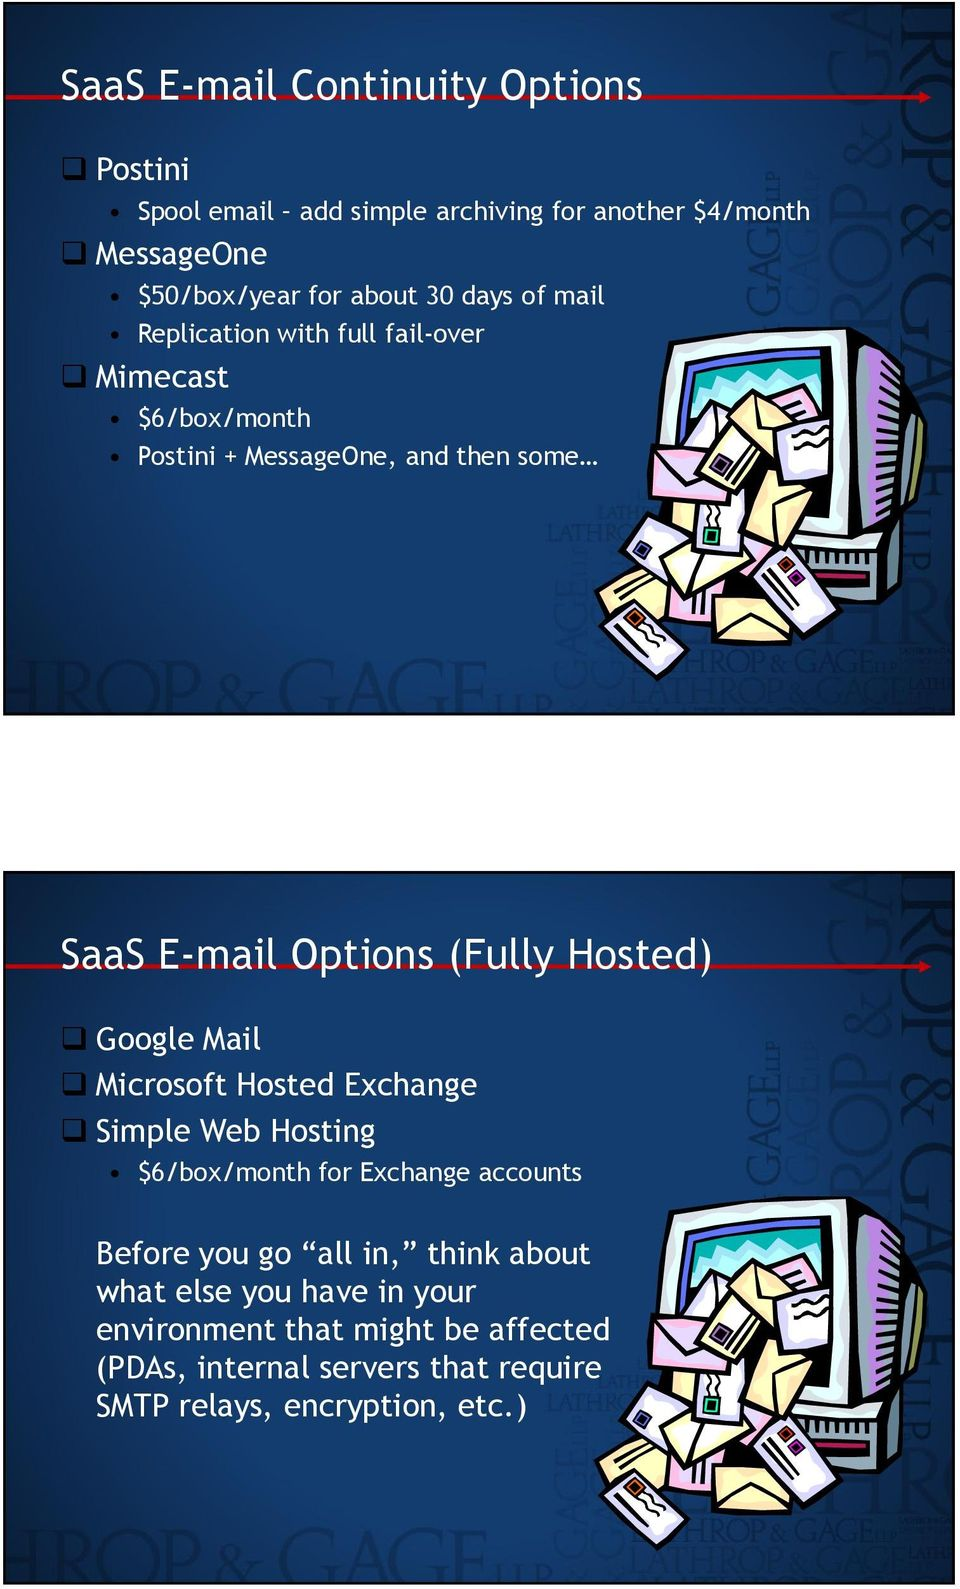 Hosted) Google Mail Microsoft Hosted Exchange Simple Web Hosting $6/box/month for Exchange accounts Before you go all in, think